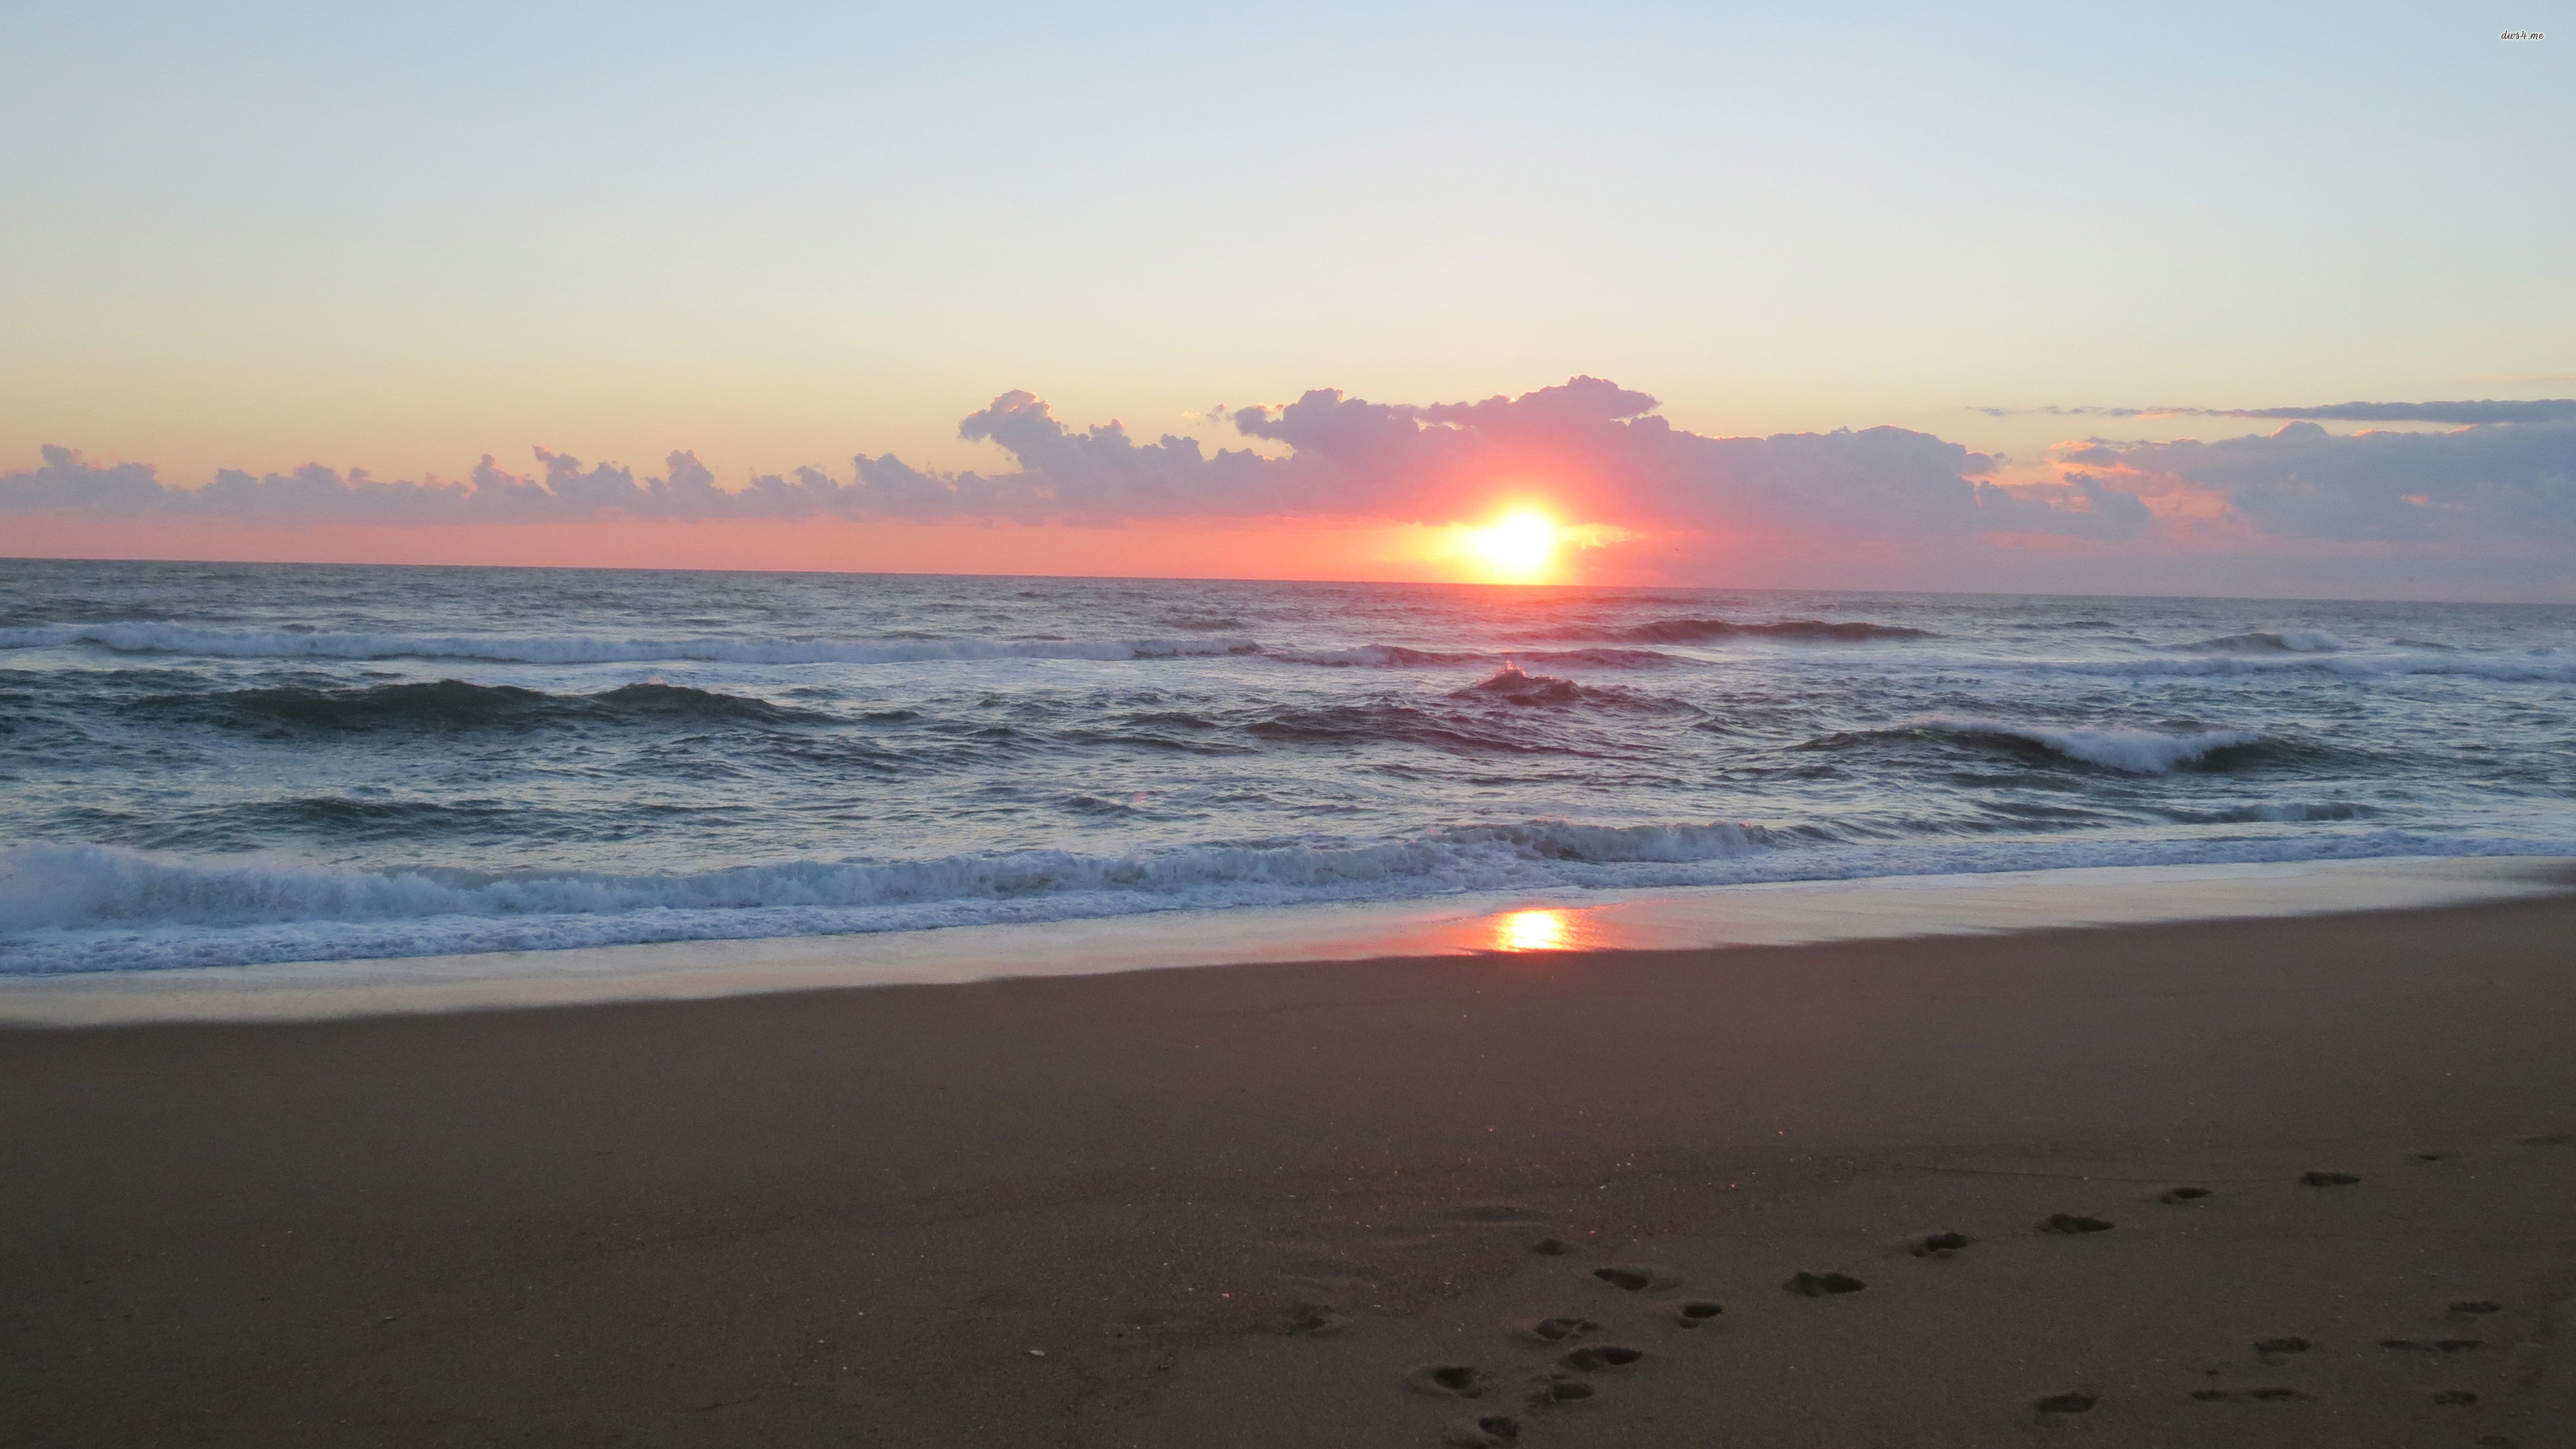 Early sunrise at Outer Banks wallpaper   Beach wallpapers   35237 3840x2160